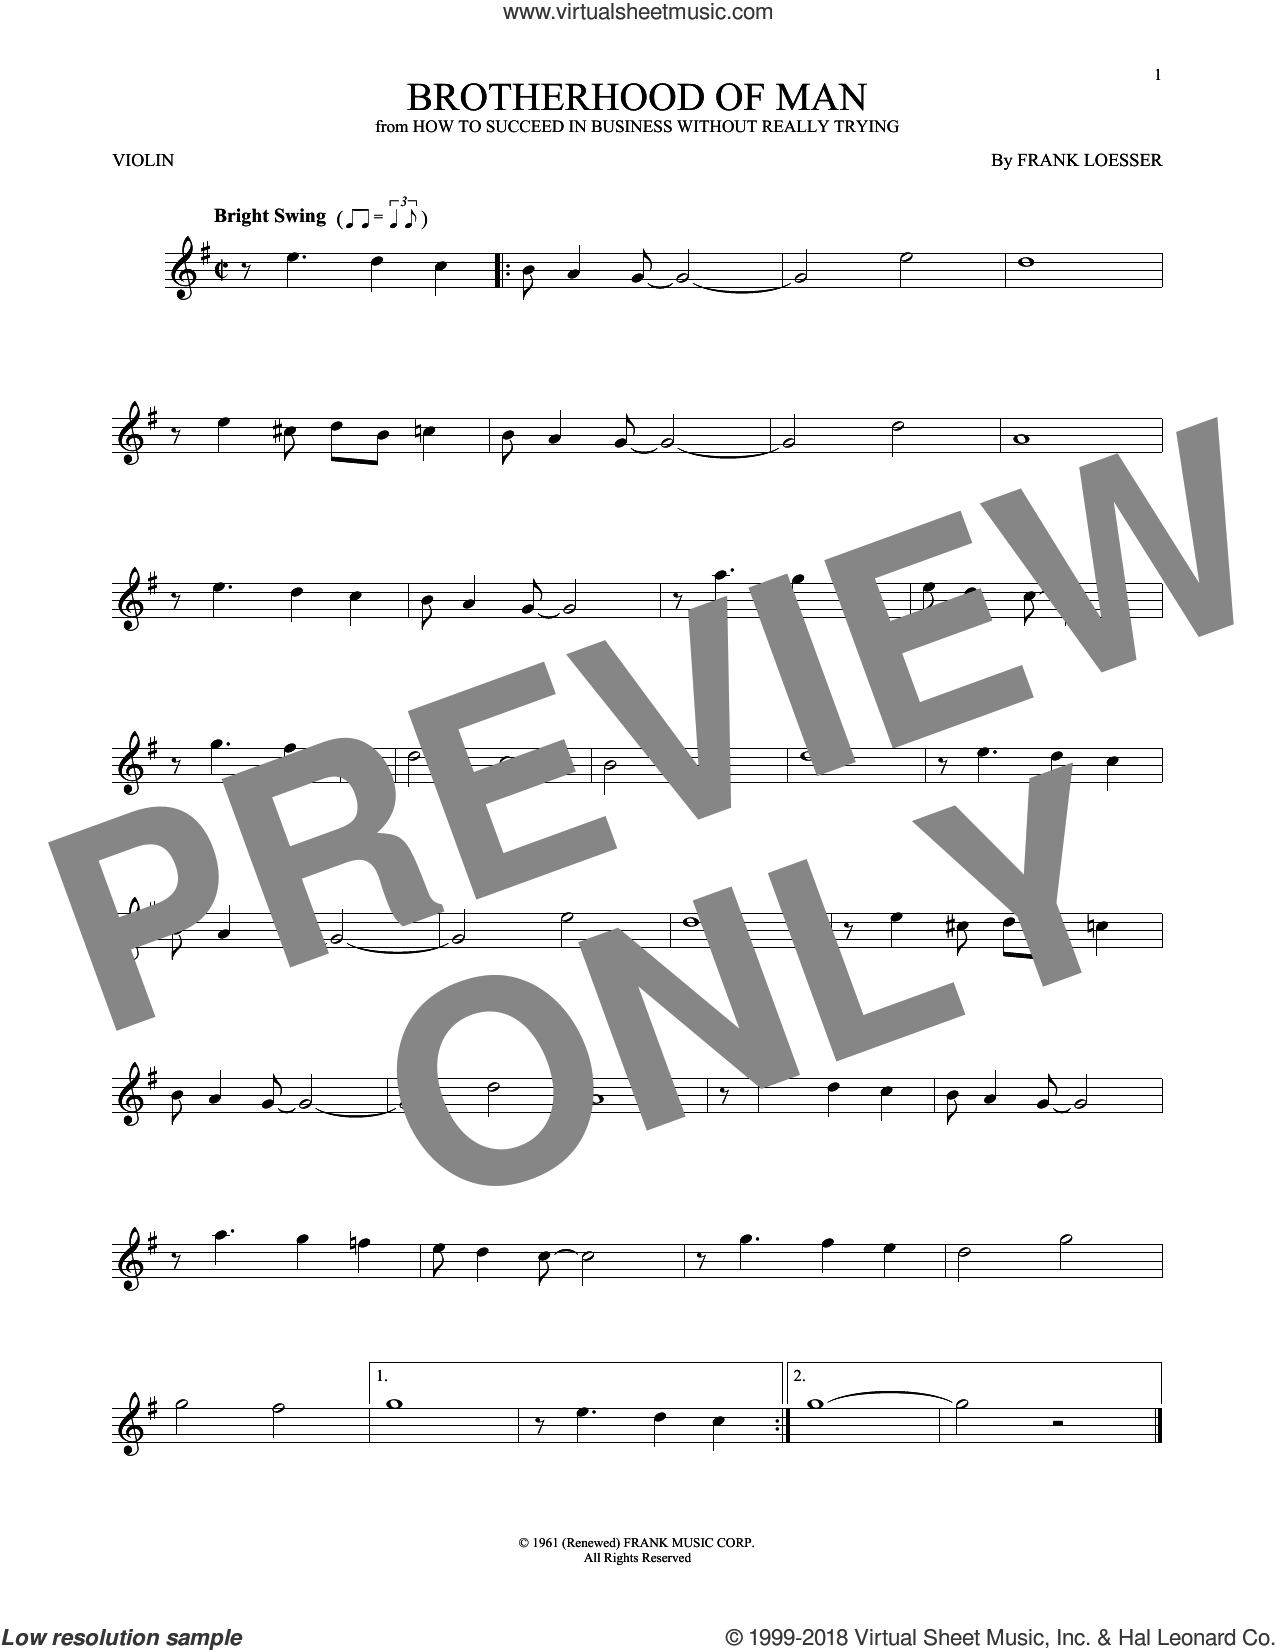 Brotherhood Of Man sheet music for violin solo by Frank Loesser, intermediate skill level